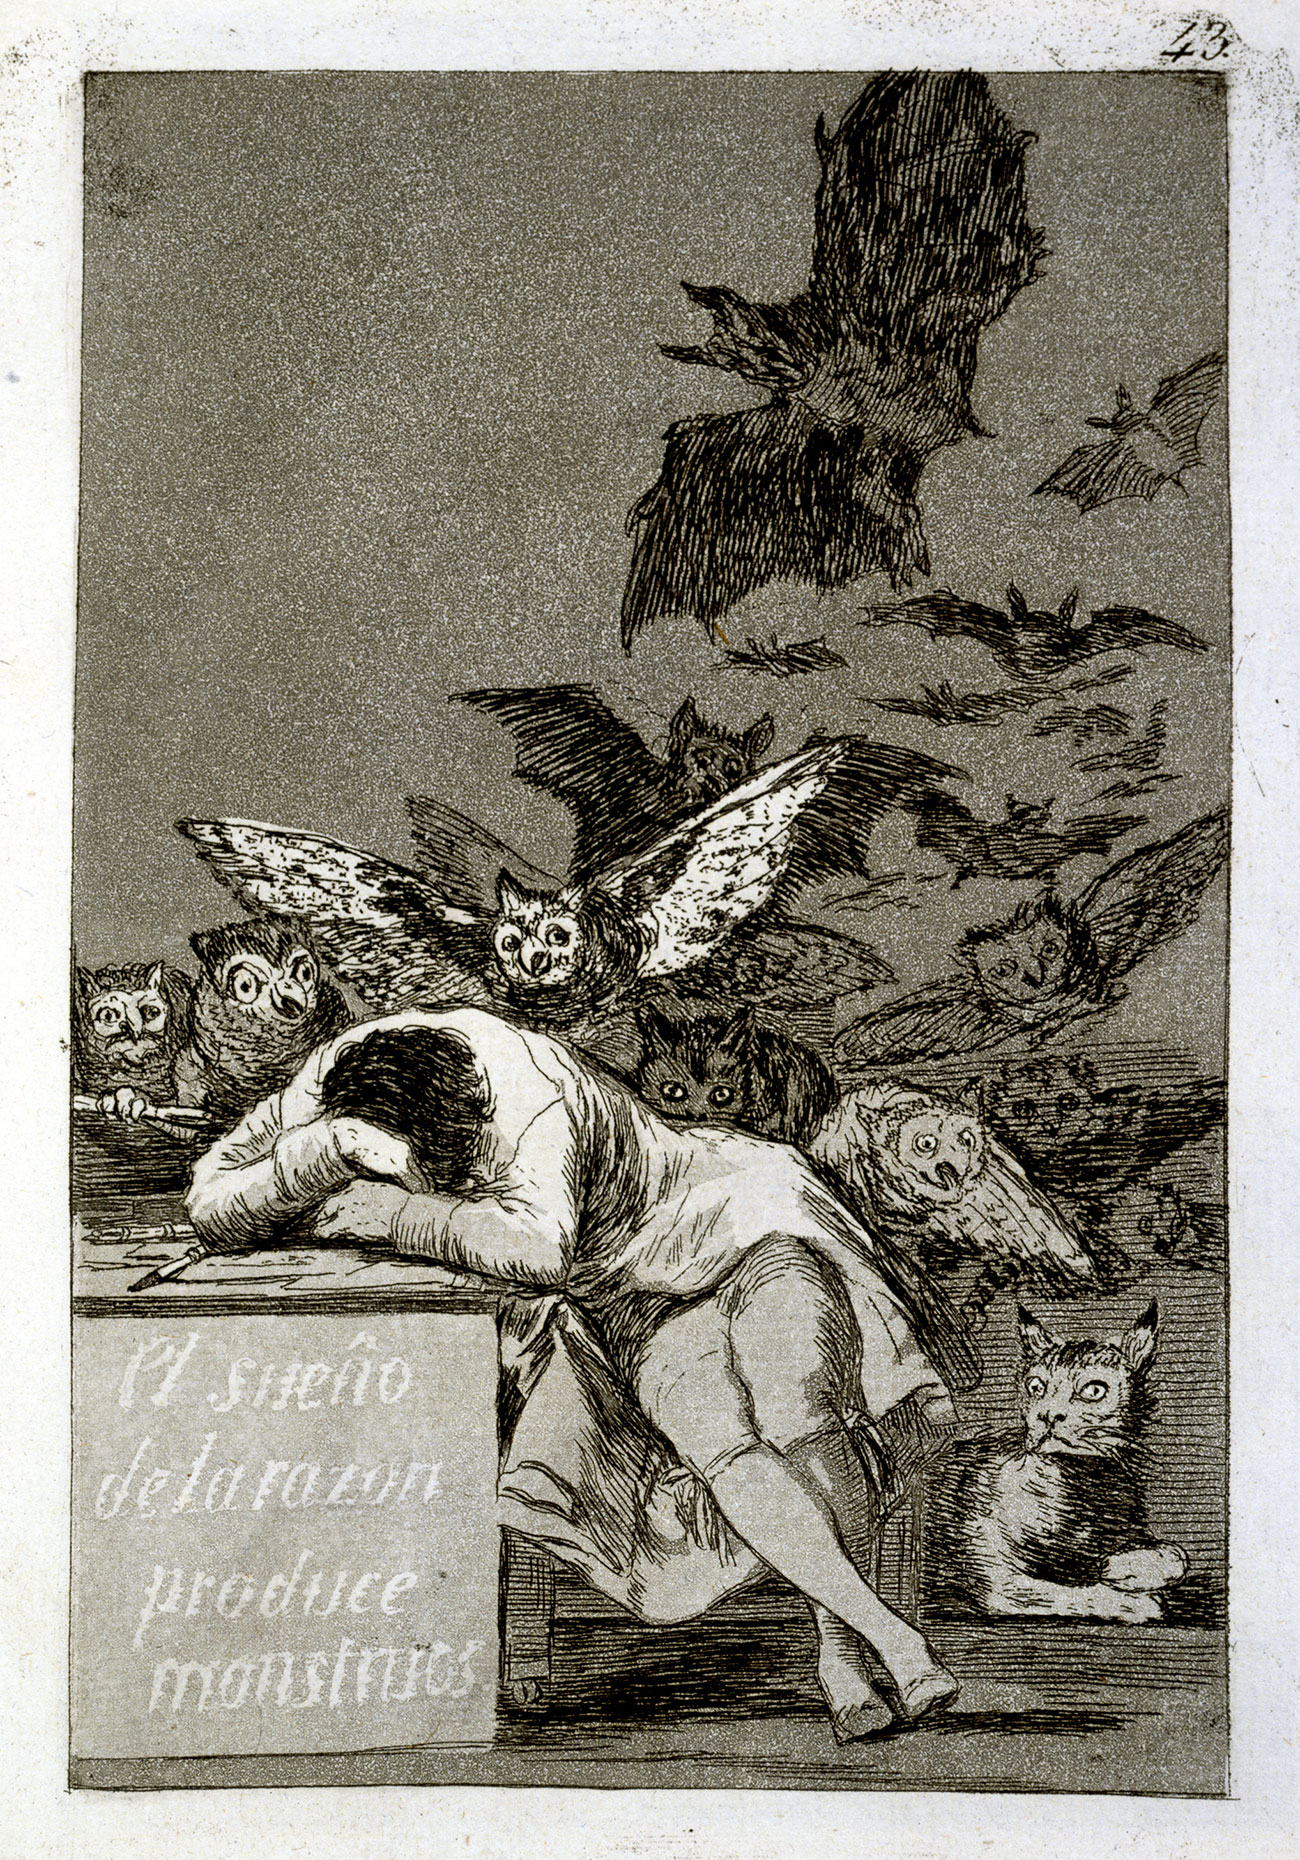 Le sommeil de la raison engendre des monstres, Francisco José de Goya y Lucientes © The British Museum, Londres, Dist. RMN-Grand Palais The Trustees of the British Museum